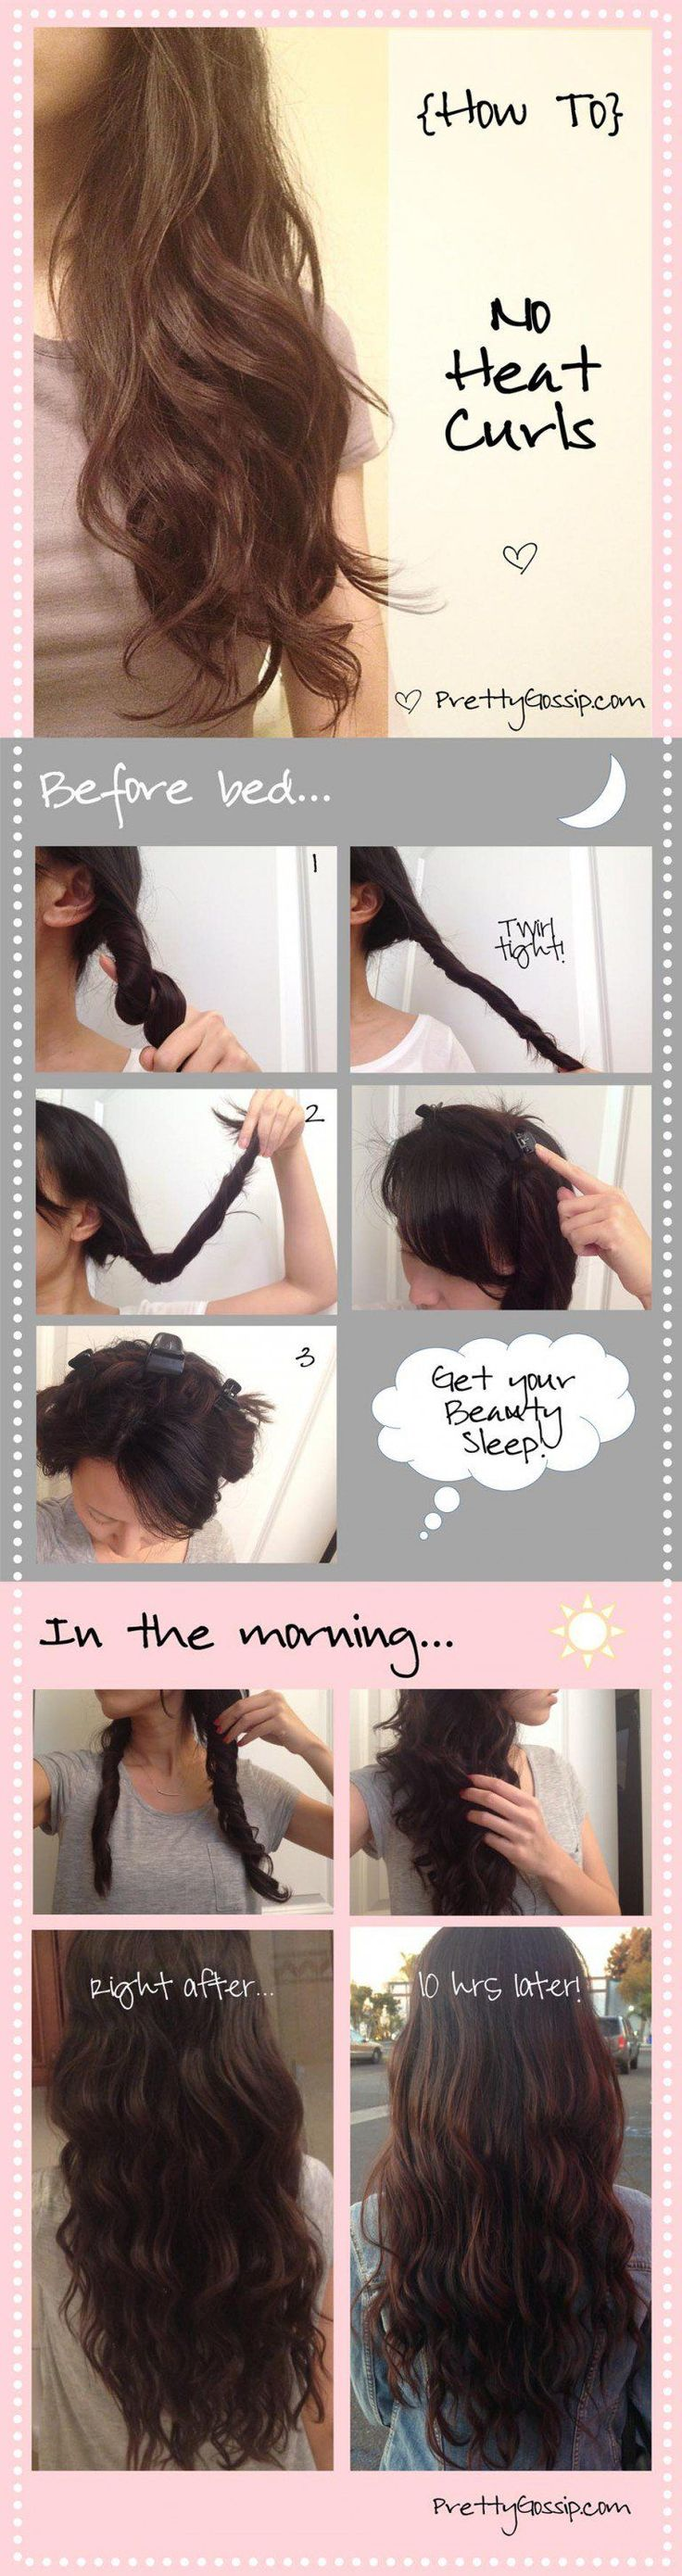 Wavy hairstyles play an important part for women's hairstyle trends. The natur…